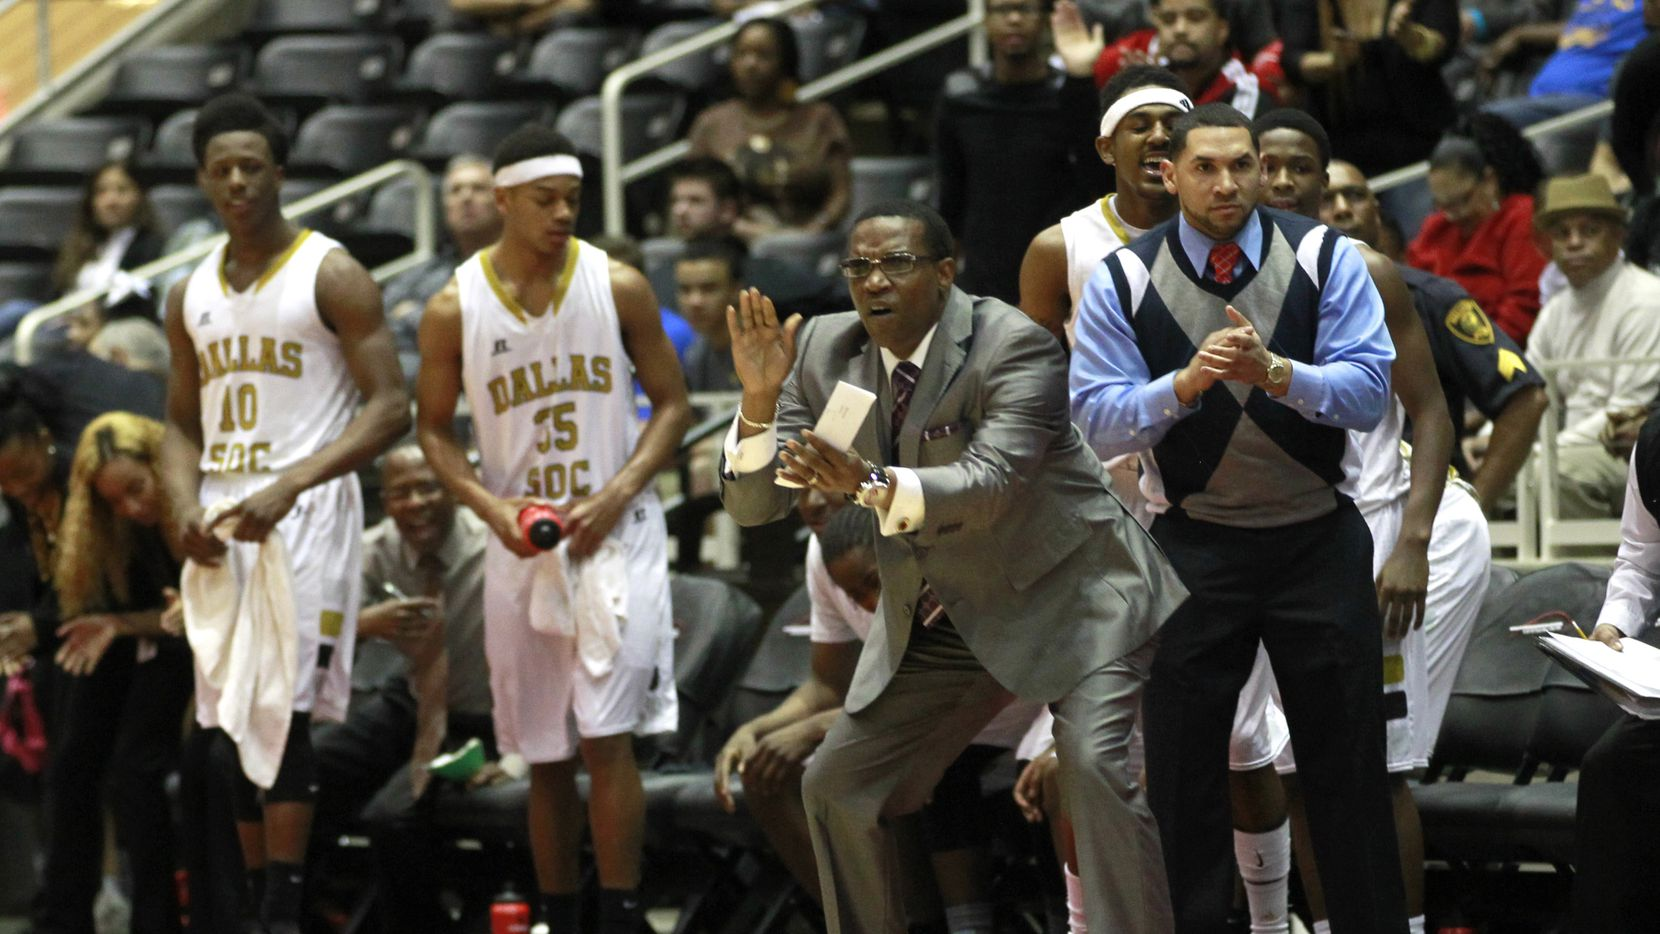 South Oak Cliff coach James Mays II directs his team during a playoff game against Lancaster.